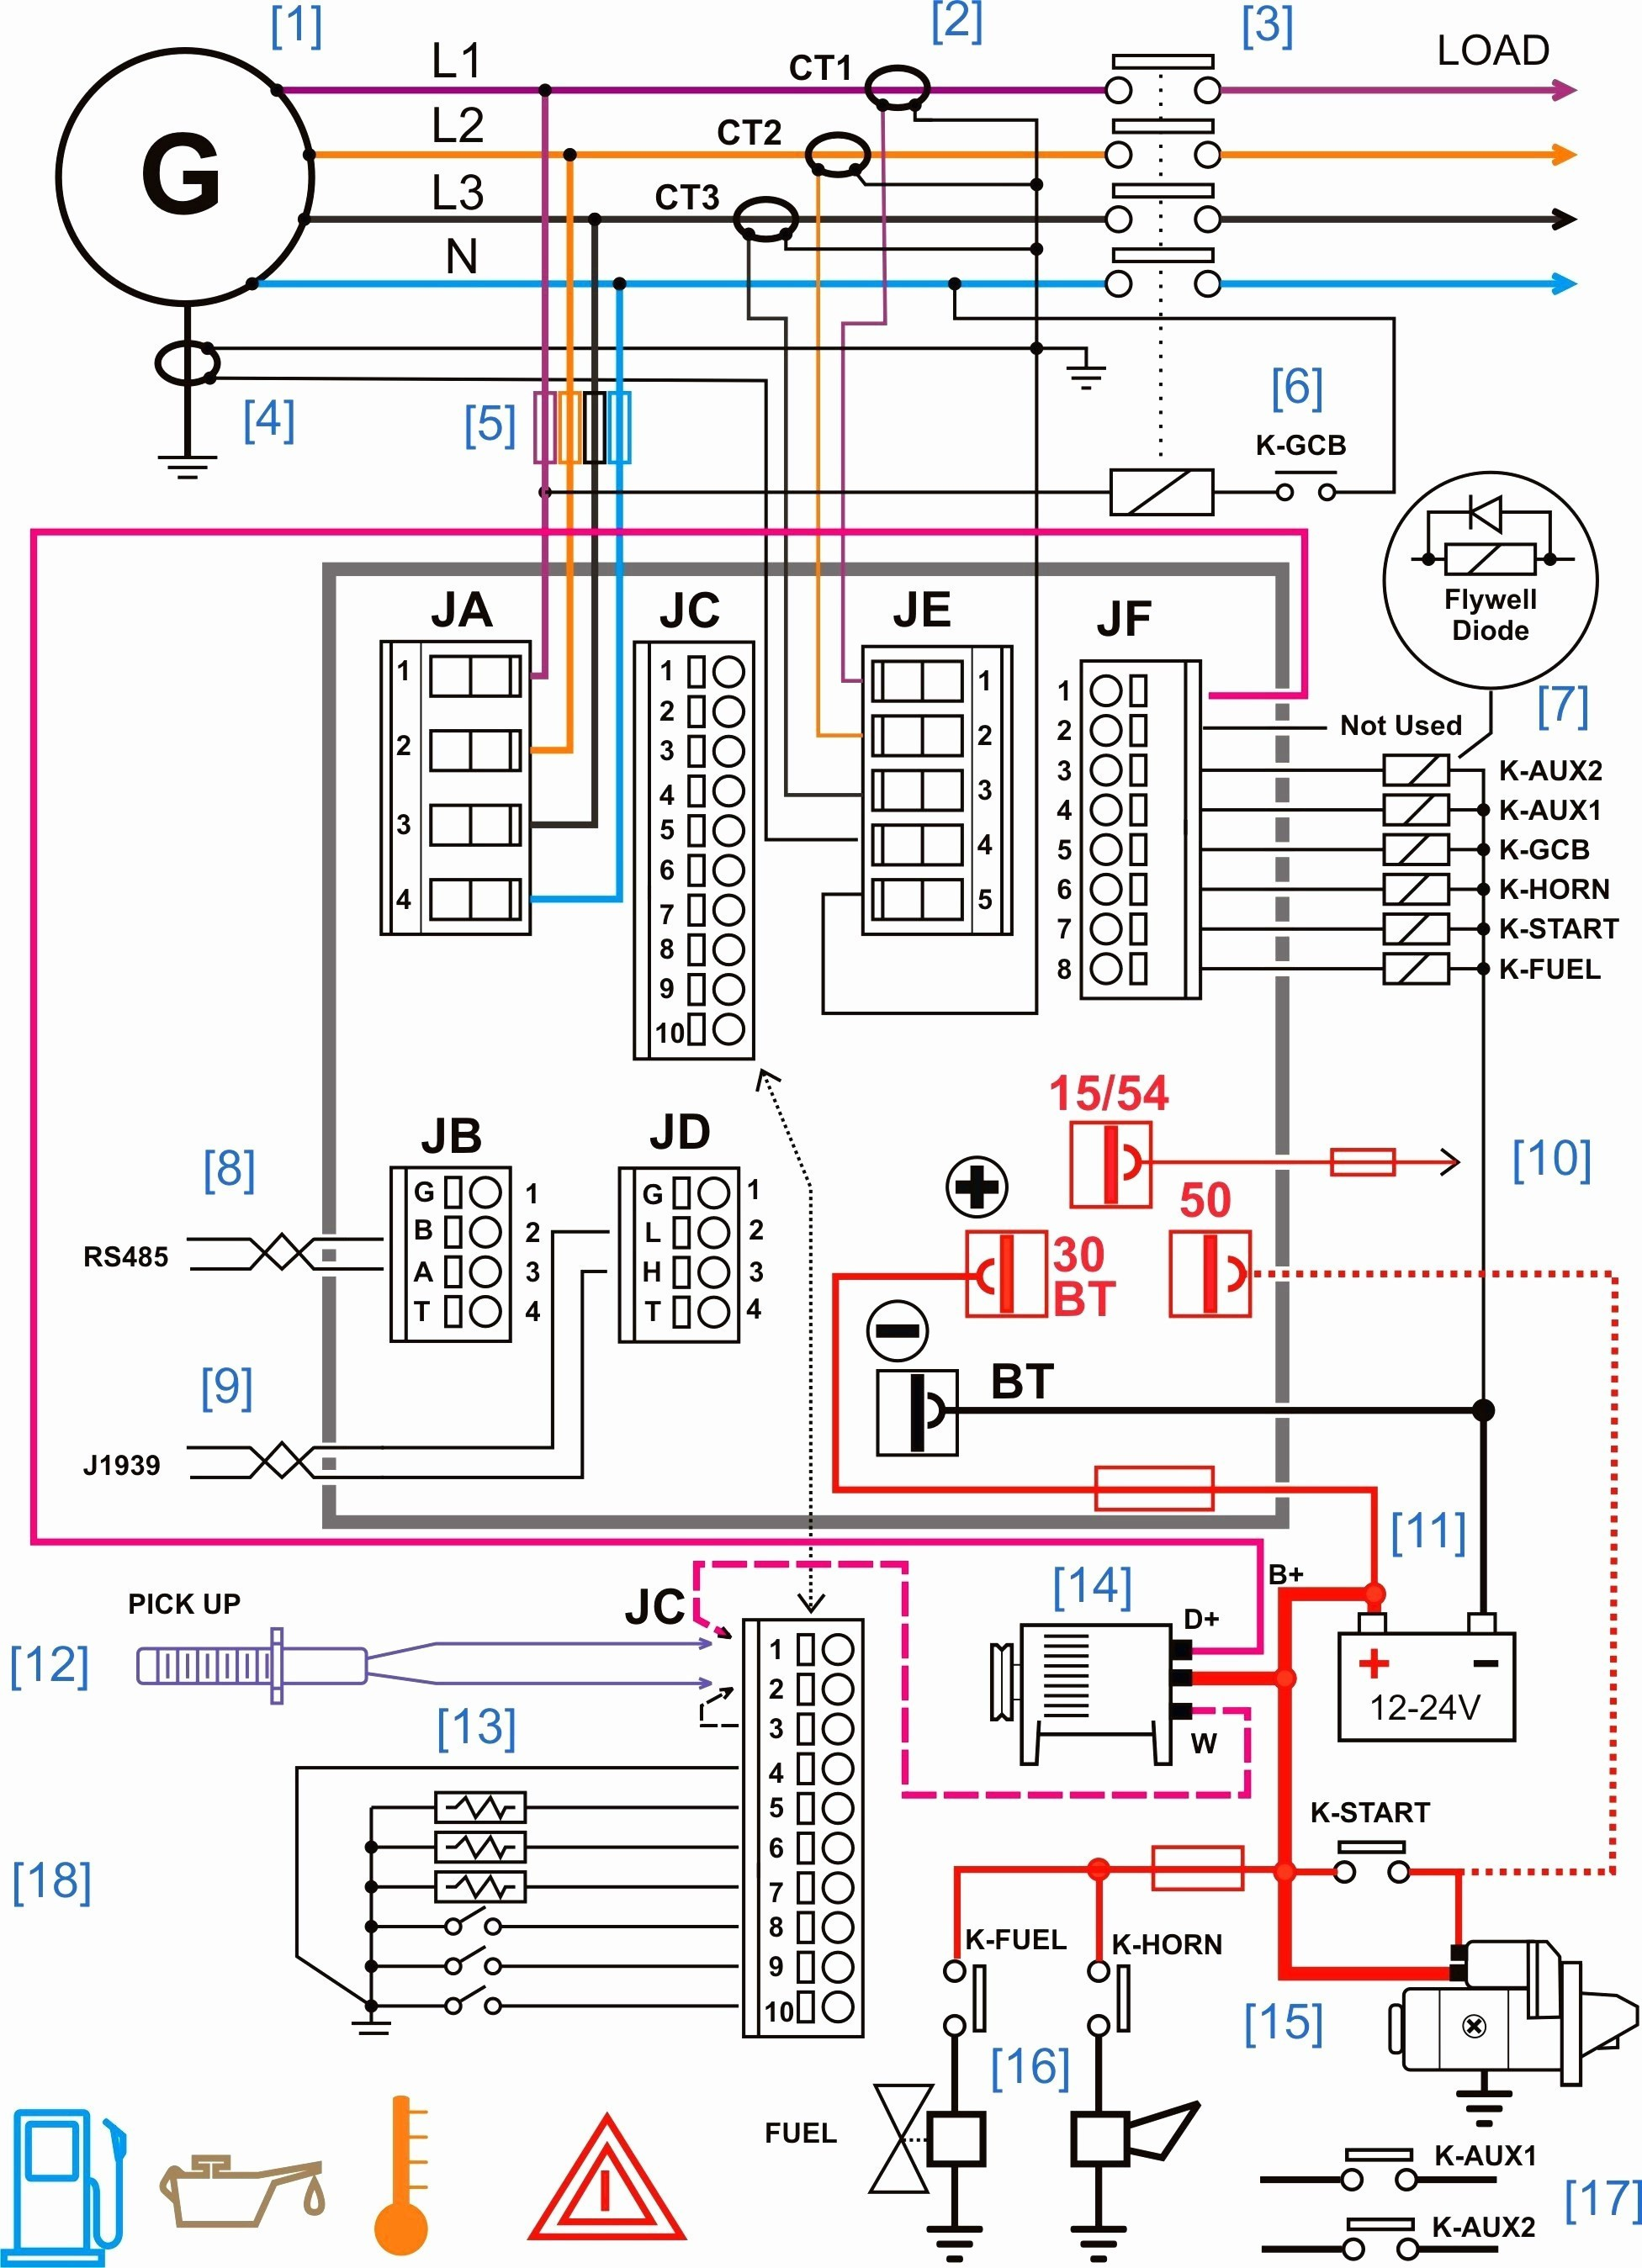 Car thermostat Diagram Heater Wiring Diagram New Automotive Wiring Diagram Line Save Best Of Car thermostat Diagram